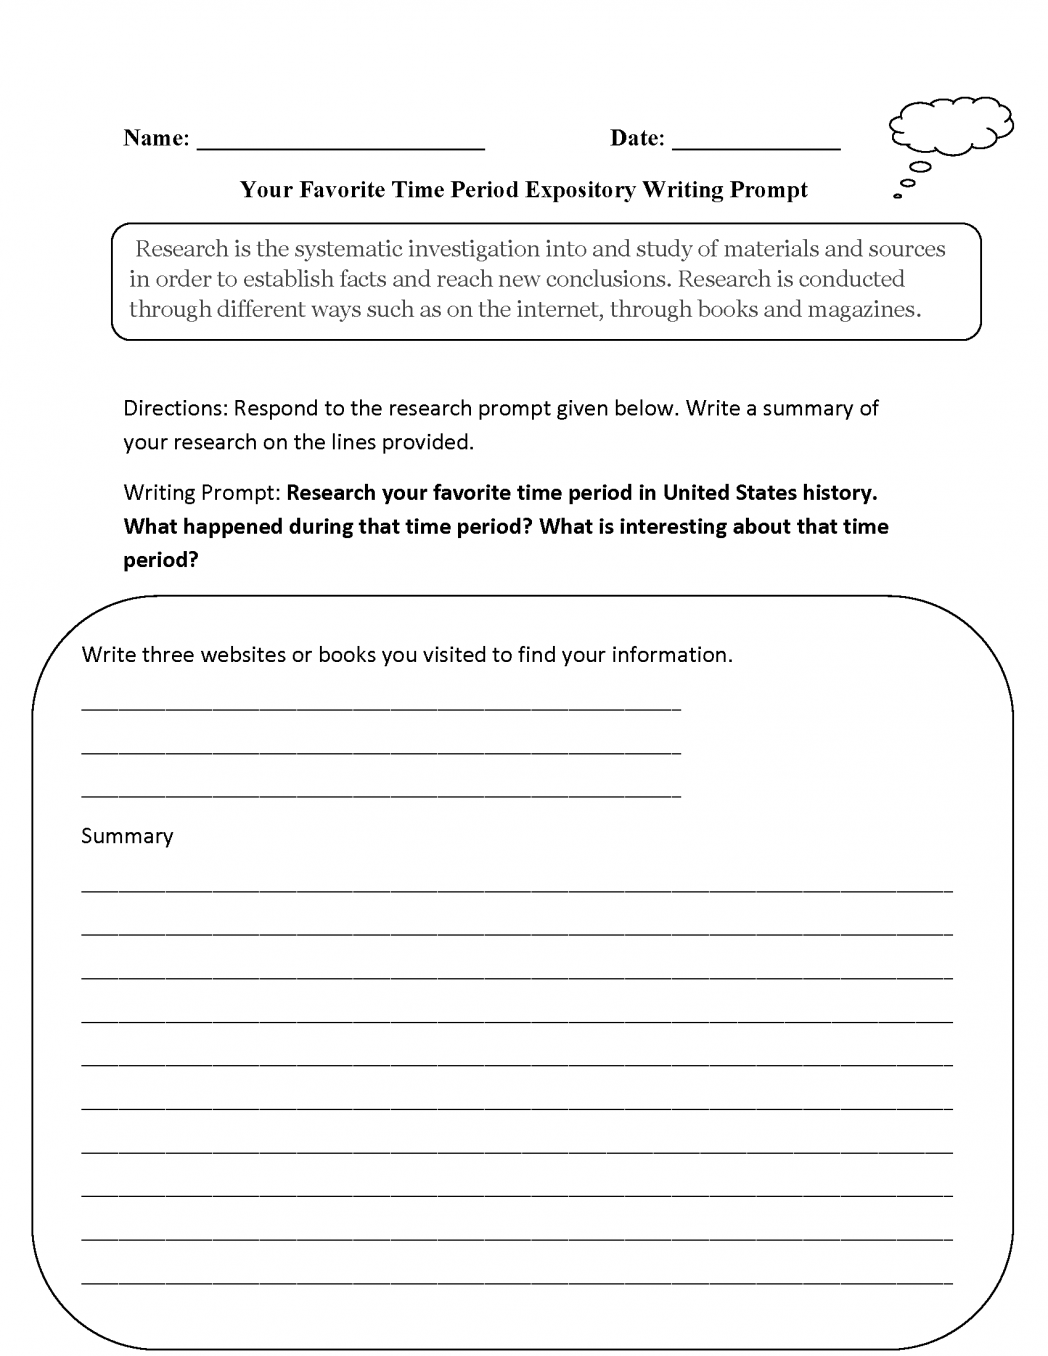 018 Essay Example Good Informative Topics Prompts Favorite Time Period Expository Writing P To Write An On The Topic Of Immigration Remarkable 2018 For High School Prompt 4th Grade Full